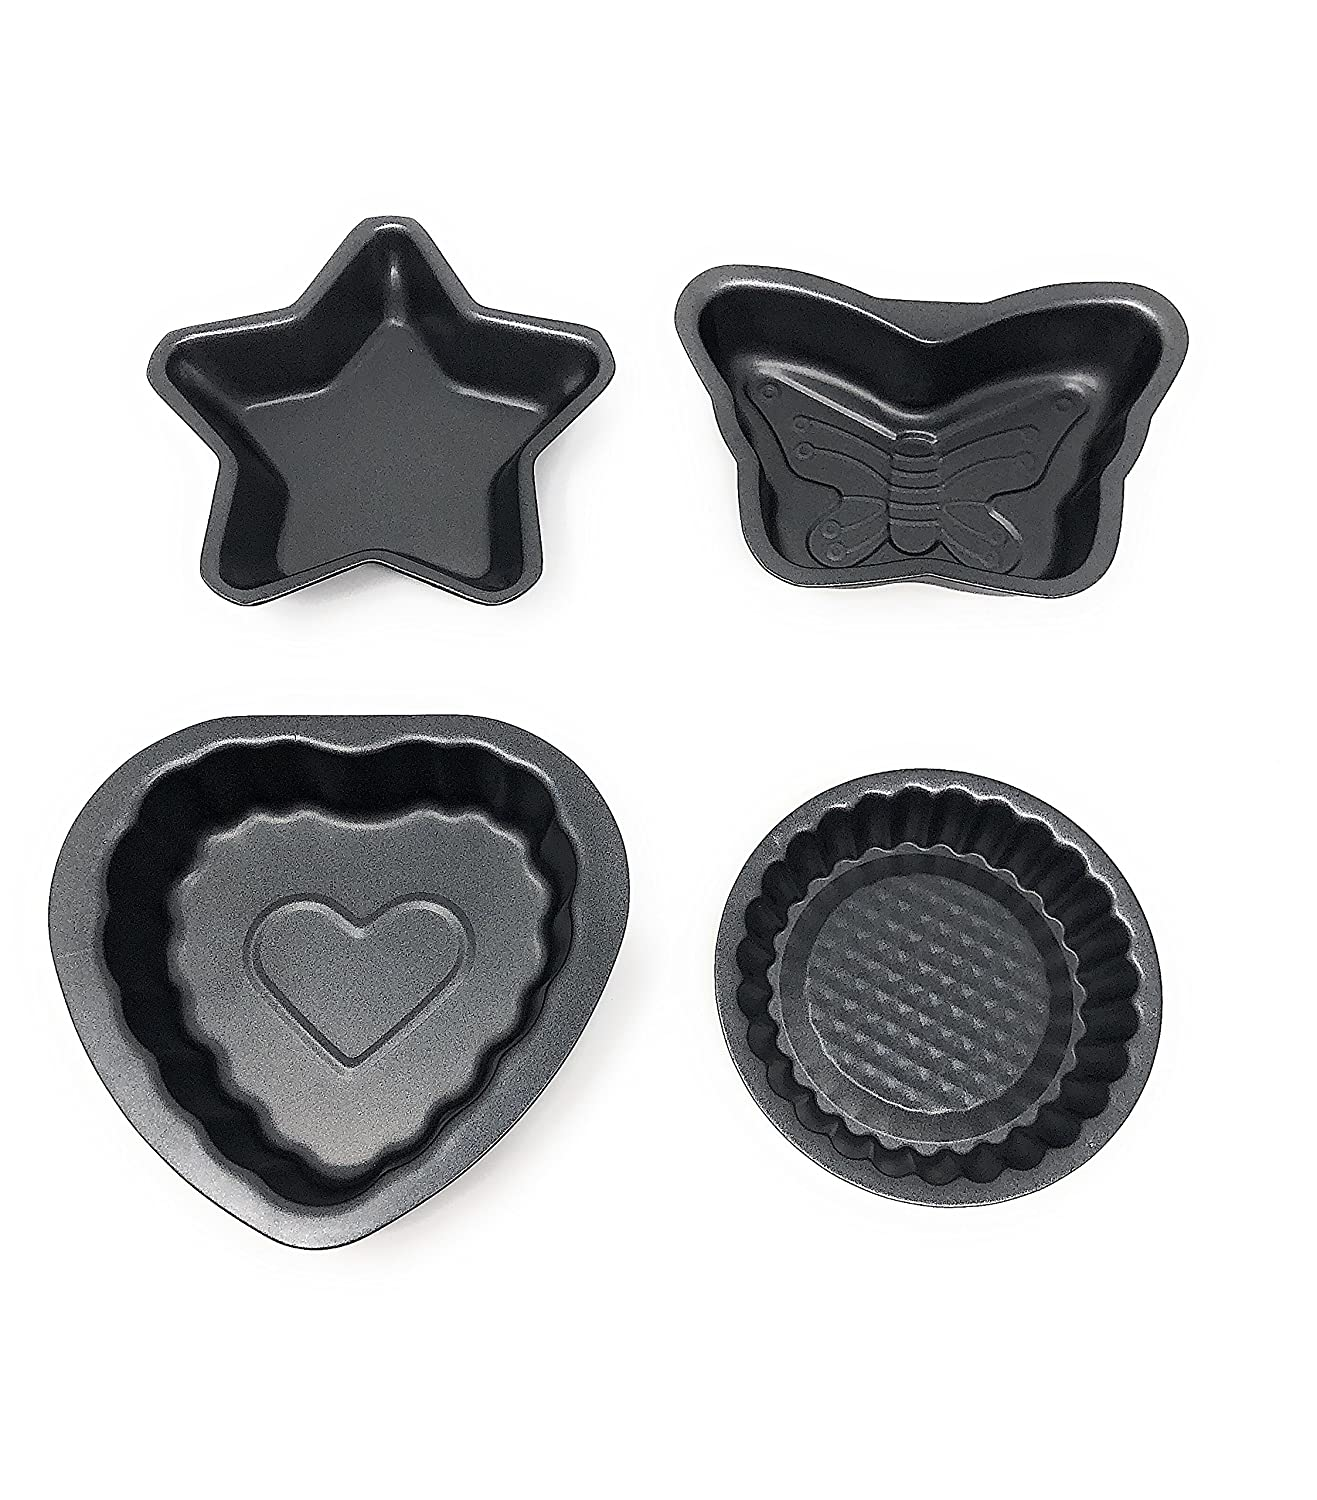 Mini Bakeware Set Nonstick Baking Pans Tools (4) Signature 80142